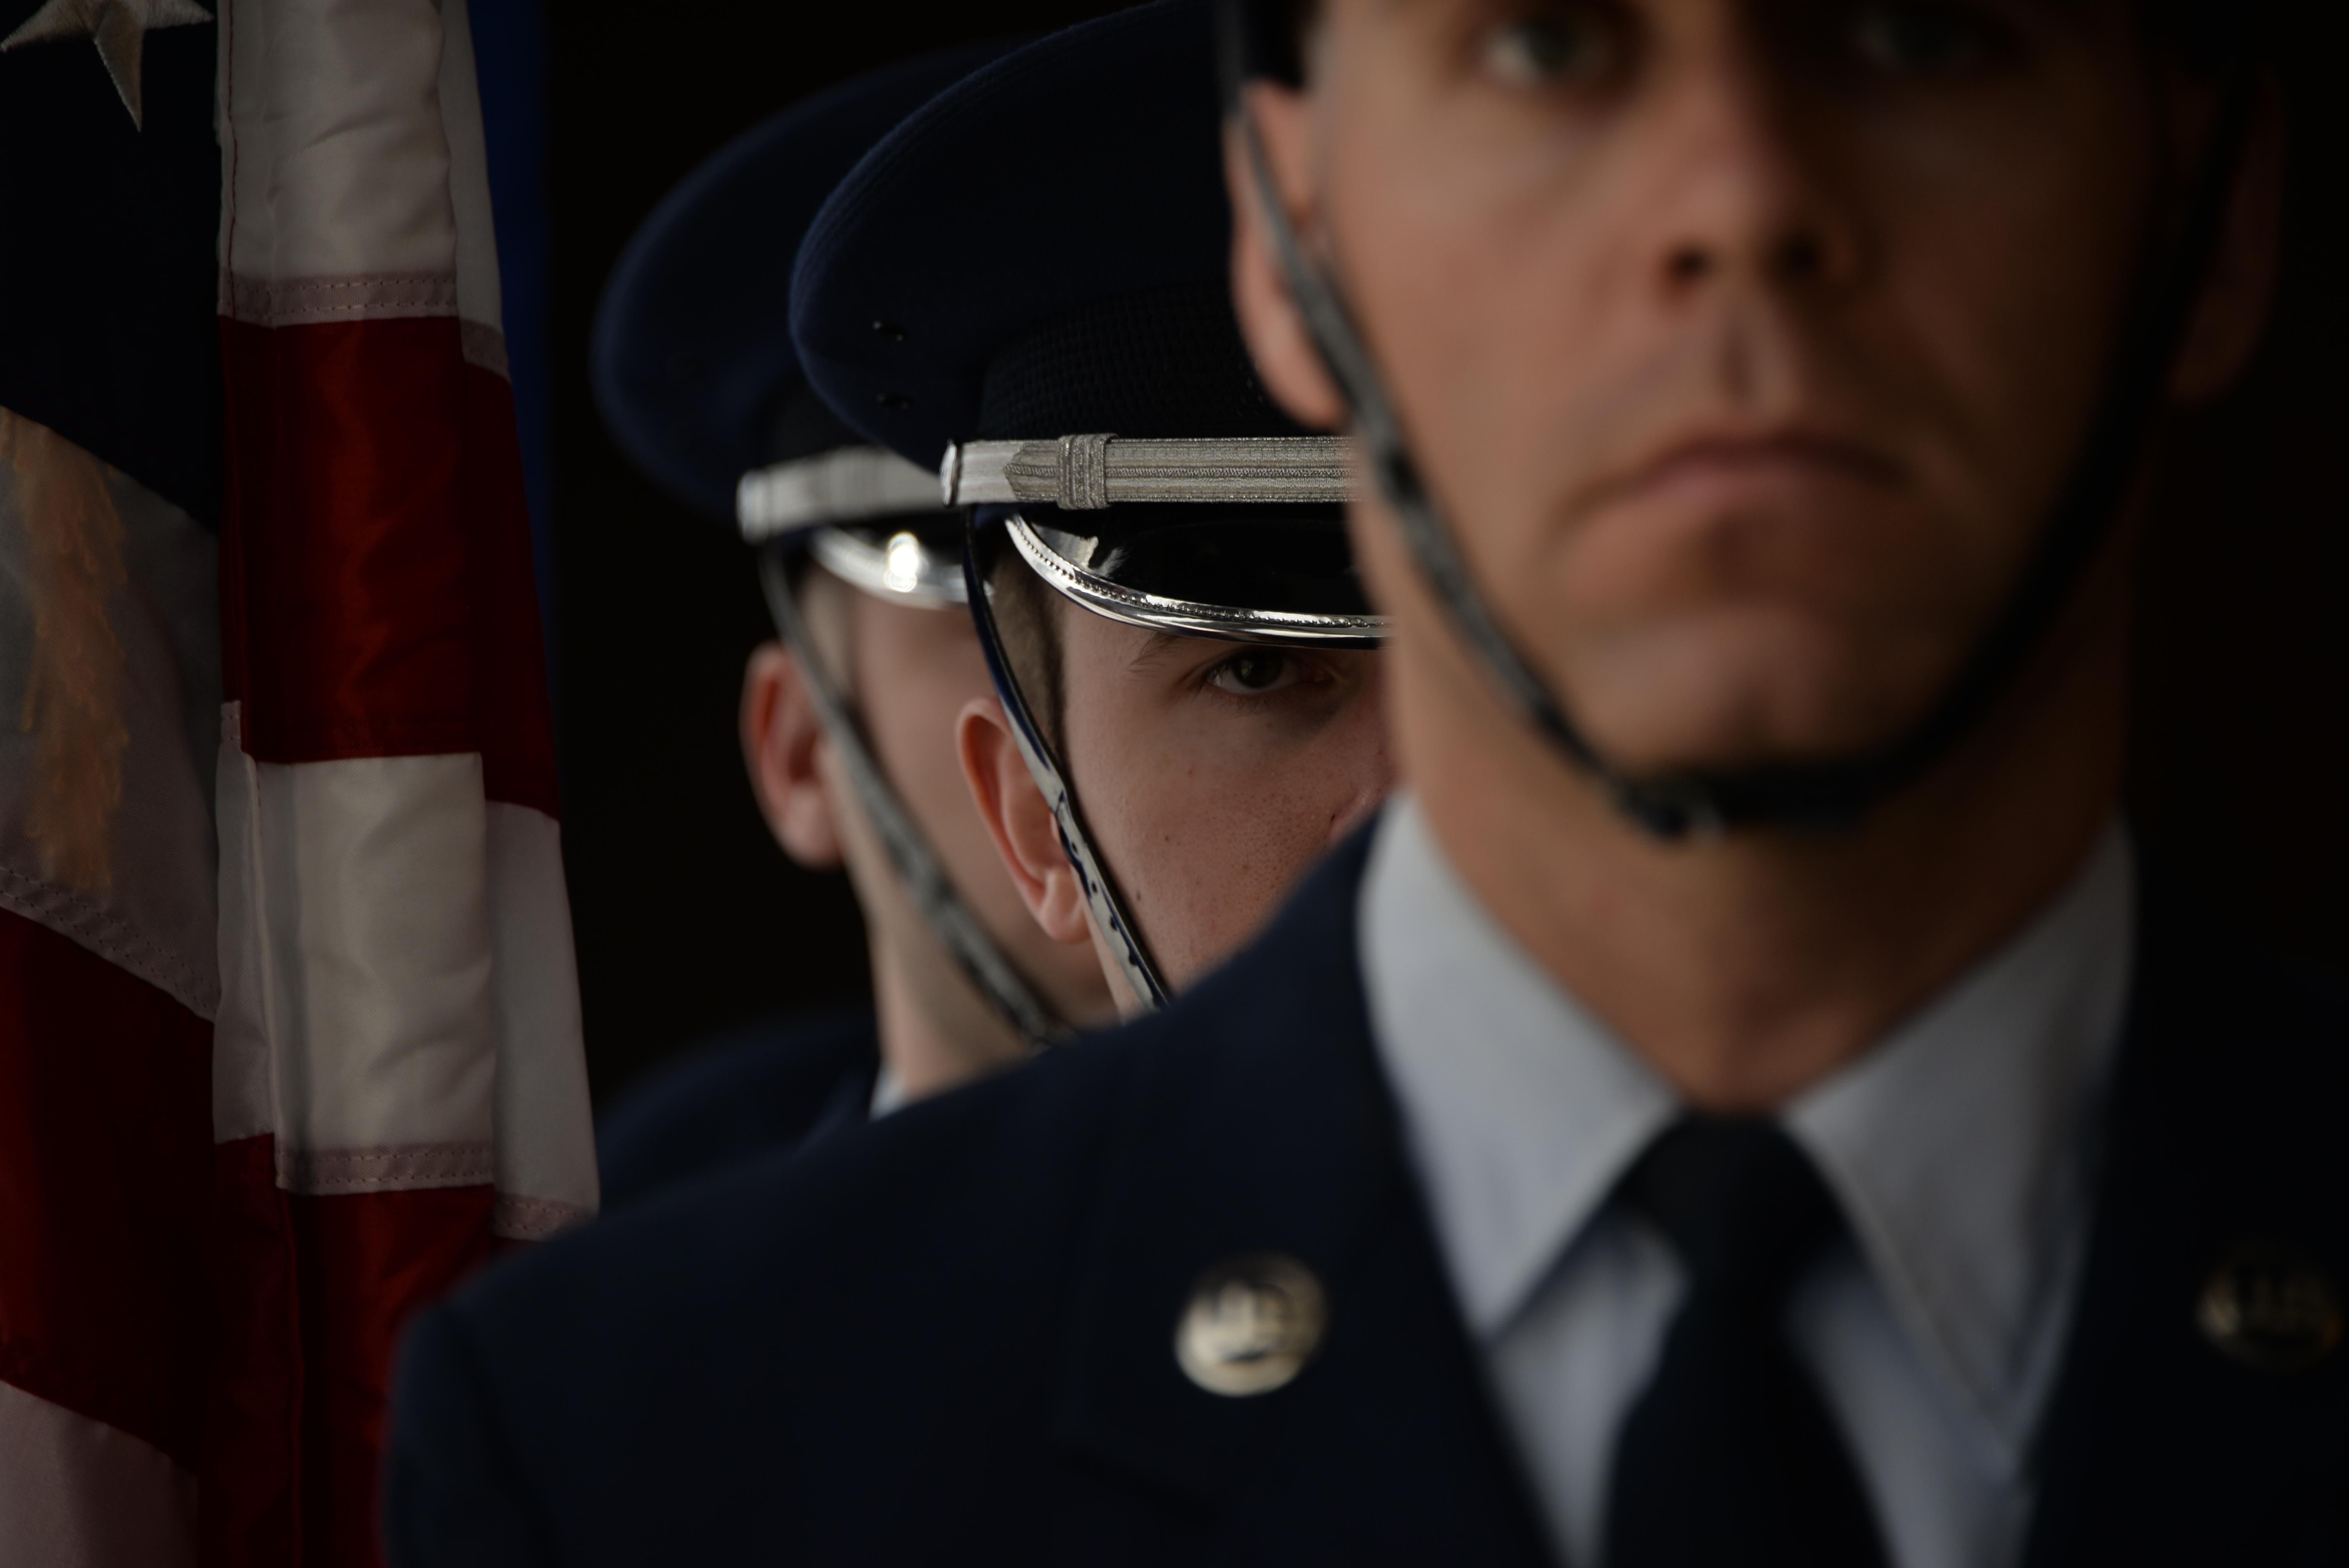 fort george g meade dating site The 70th intelligence, surveillance and reconnaissance wing (70 isrw), with headquarters at fort george g meade, maryland, integrates air force capabilities into global cryptologic.